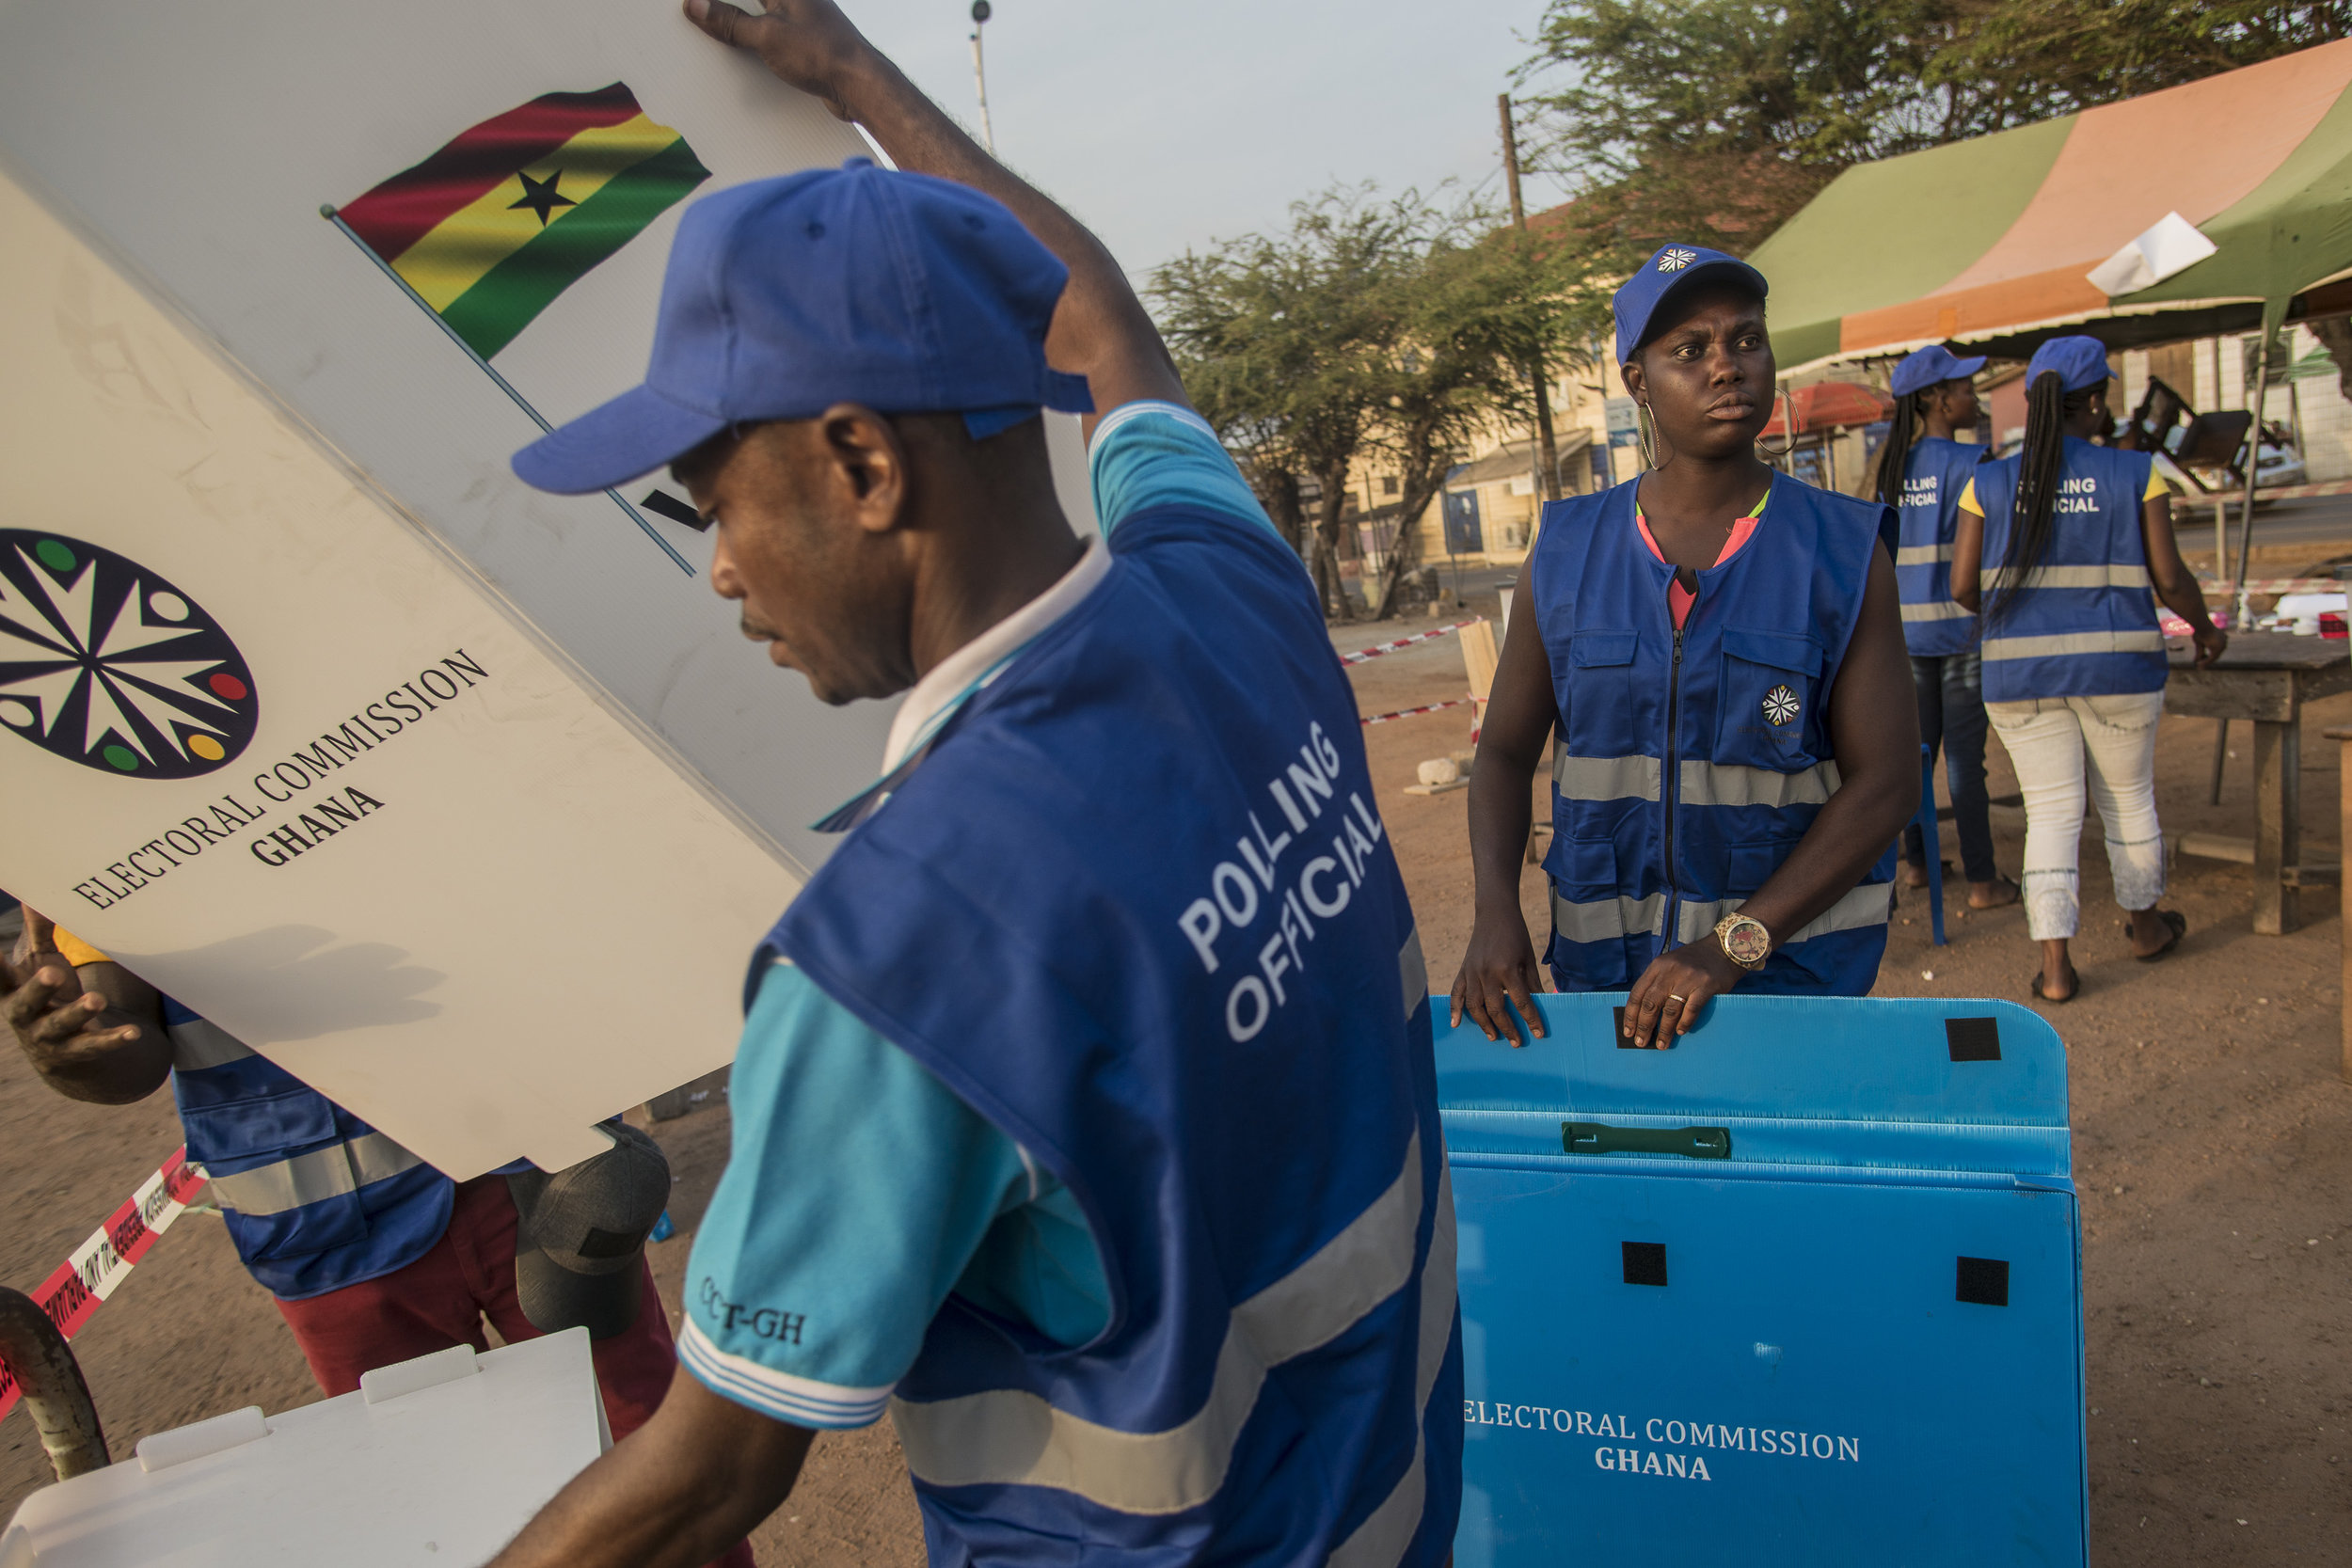 Polling officials preparing a polling station in James Town Accra during Ghana's General Election voting day